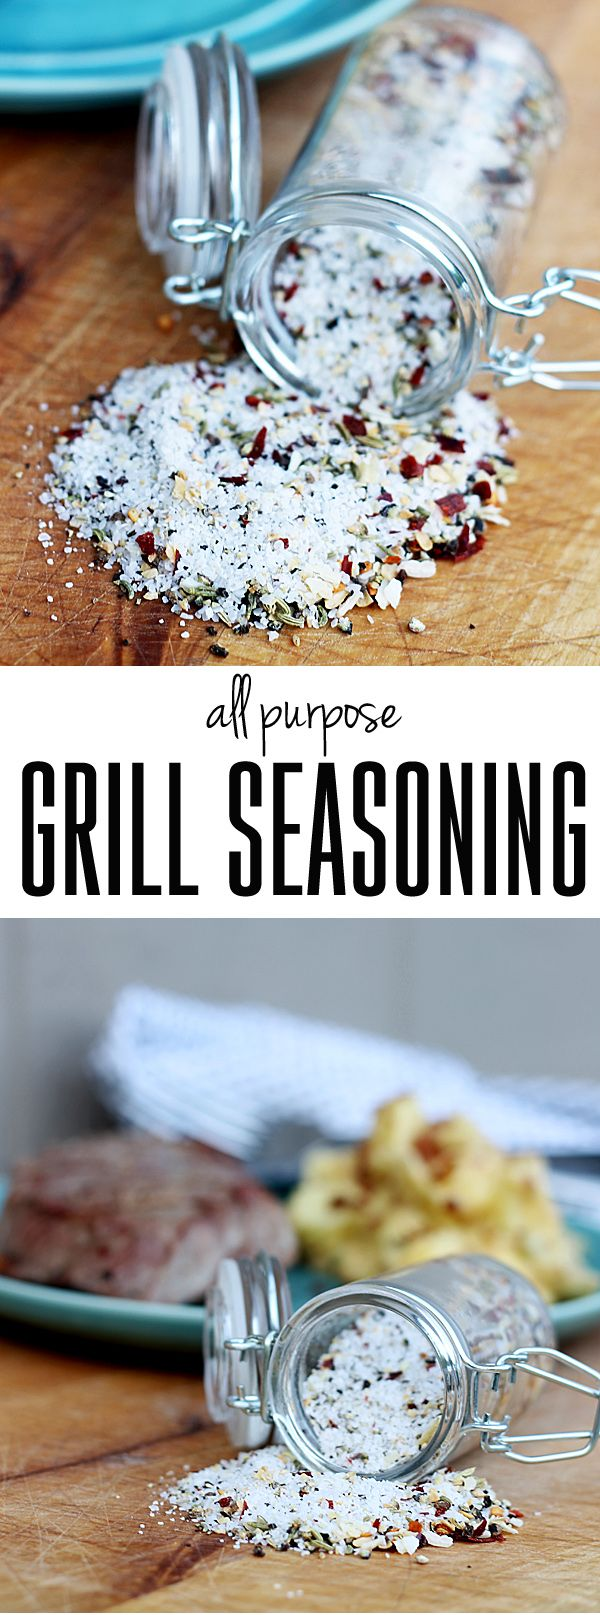 DIY Chicago-Style Grill Seasoning Recipe on The Shabby Creek Cottage at http://www.theshabbycreekcottage.com/2015/05/chicago-style-grill-seasoning.html